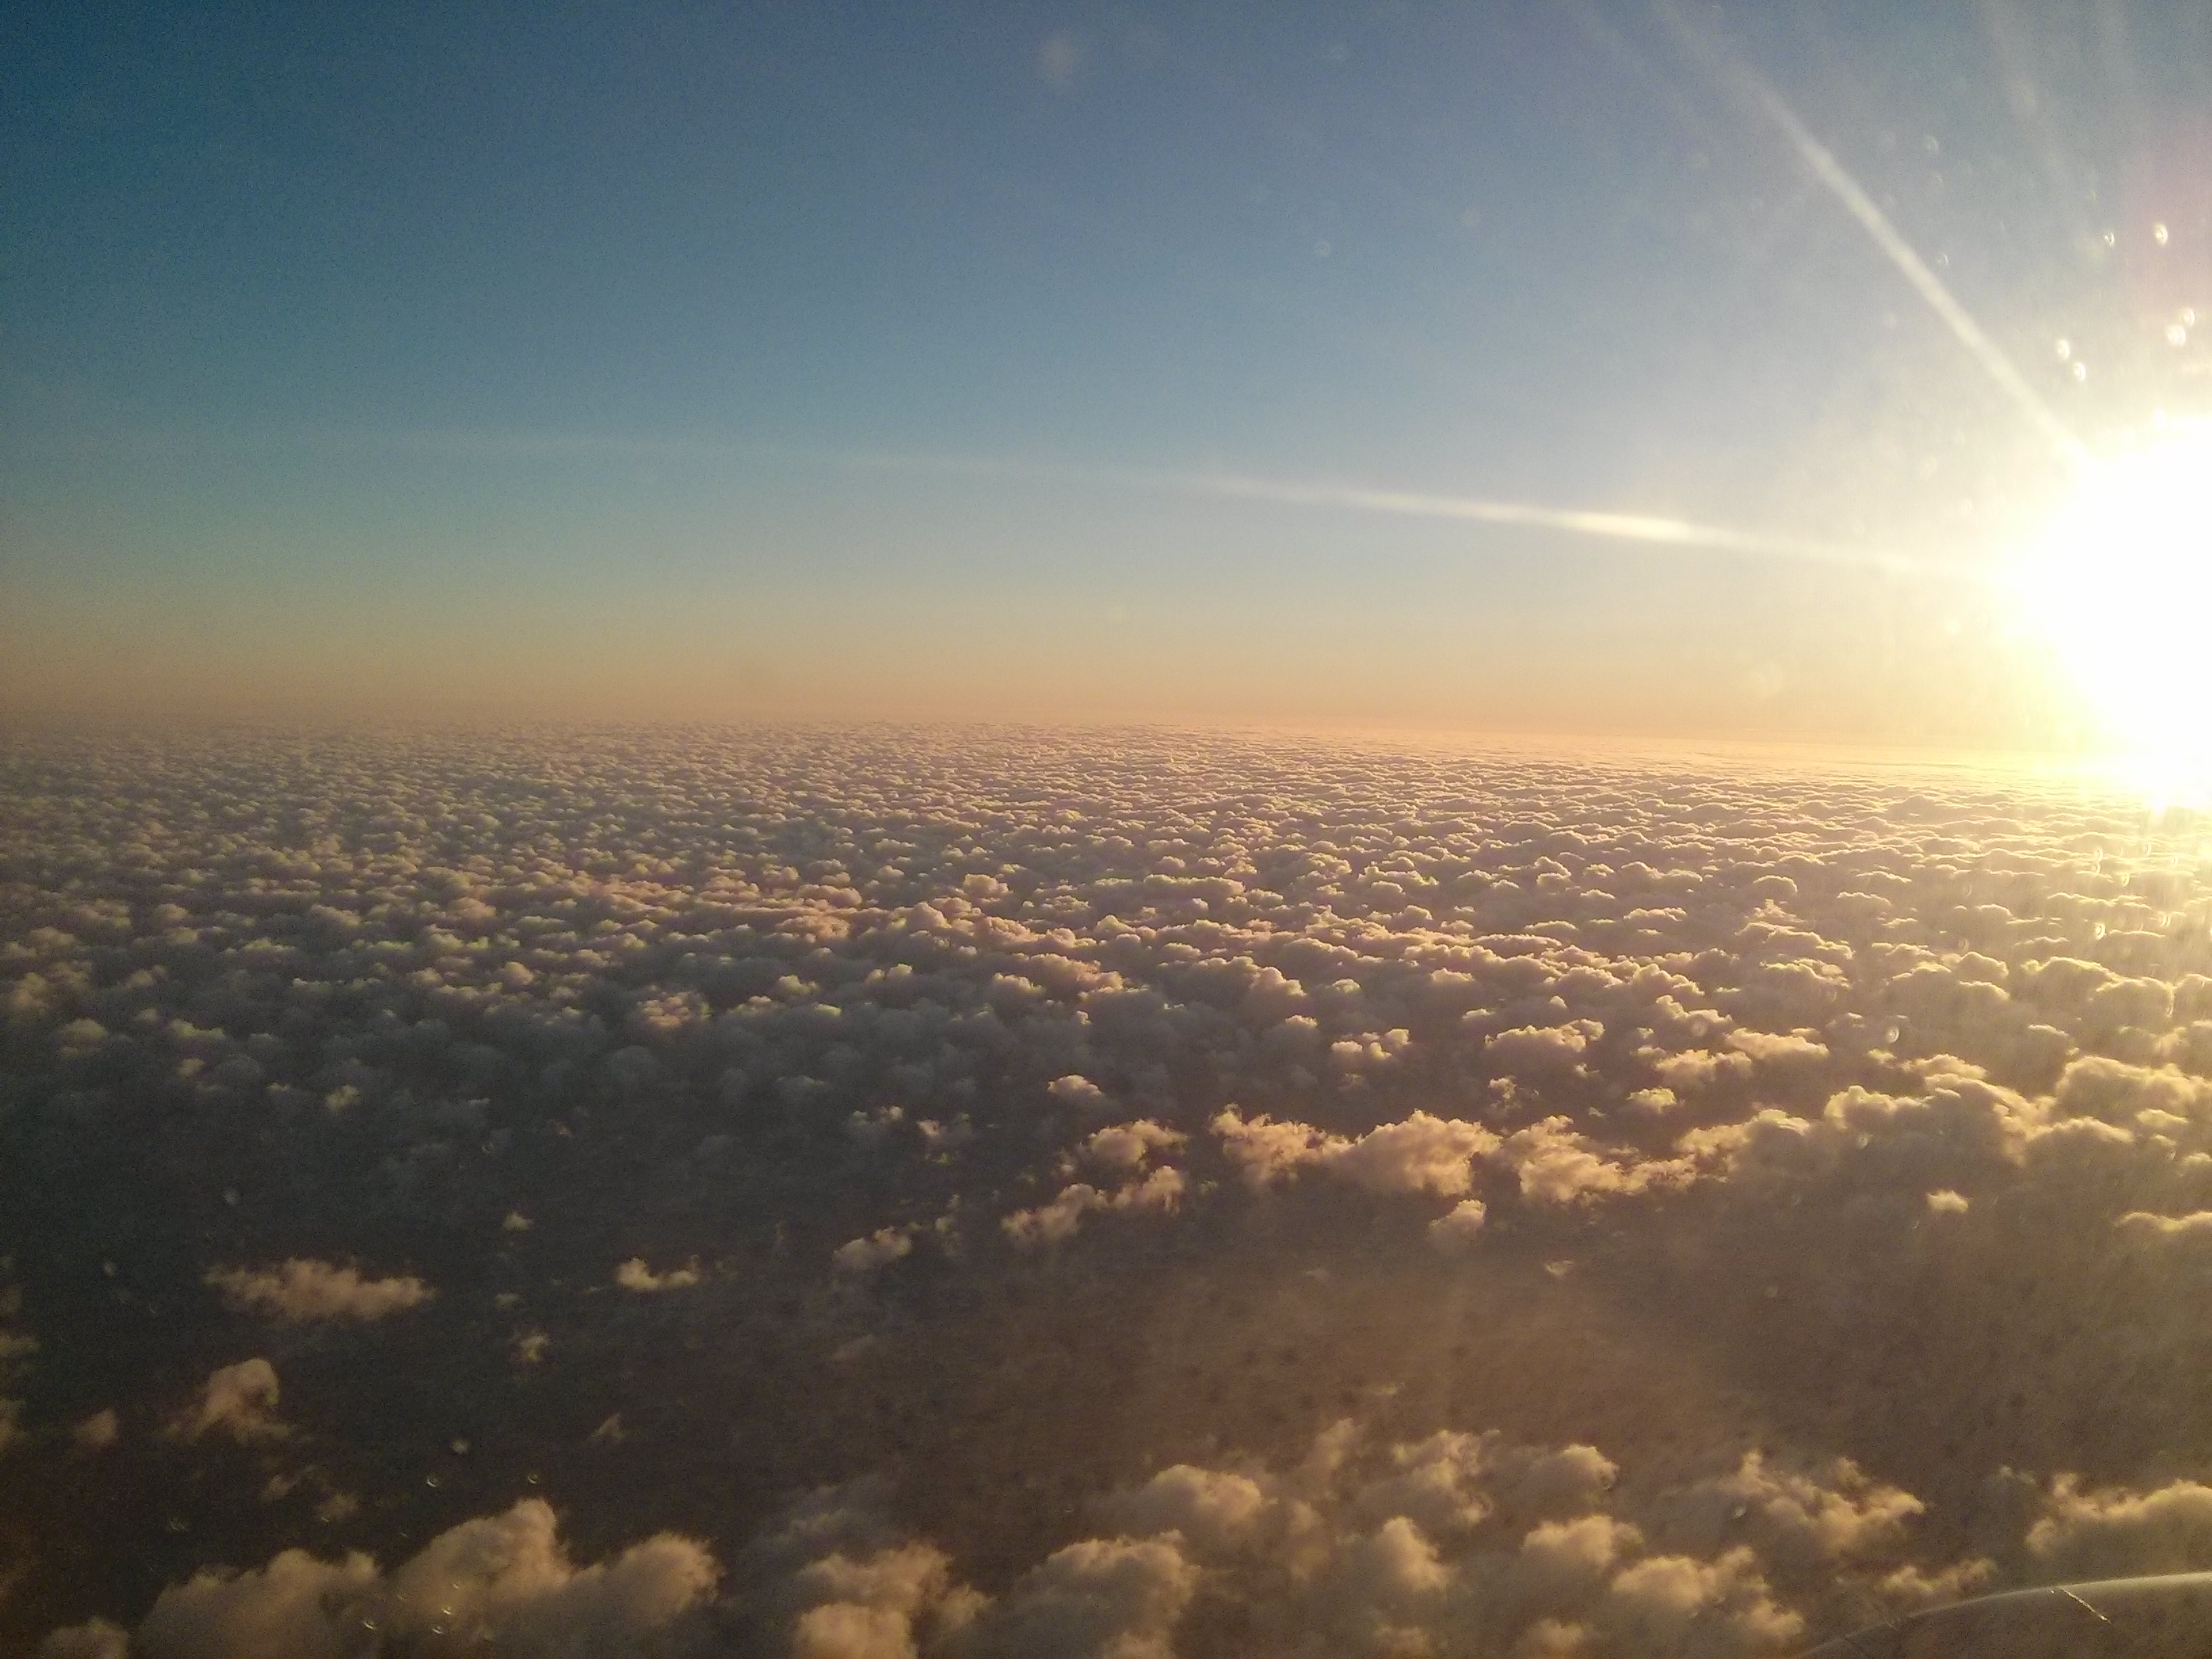 fluffy clouds with sun rising on the right side, blue sky gradient into white-pink tinted clouds